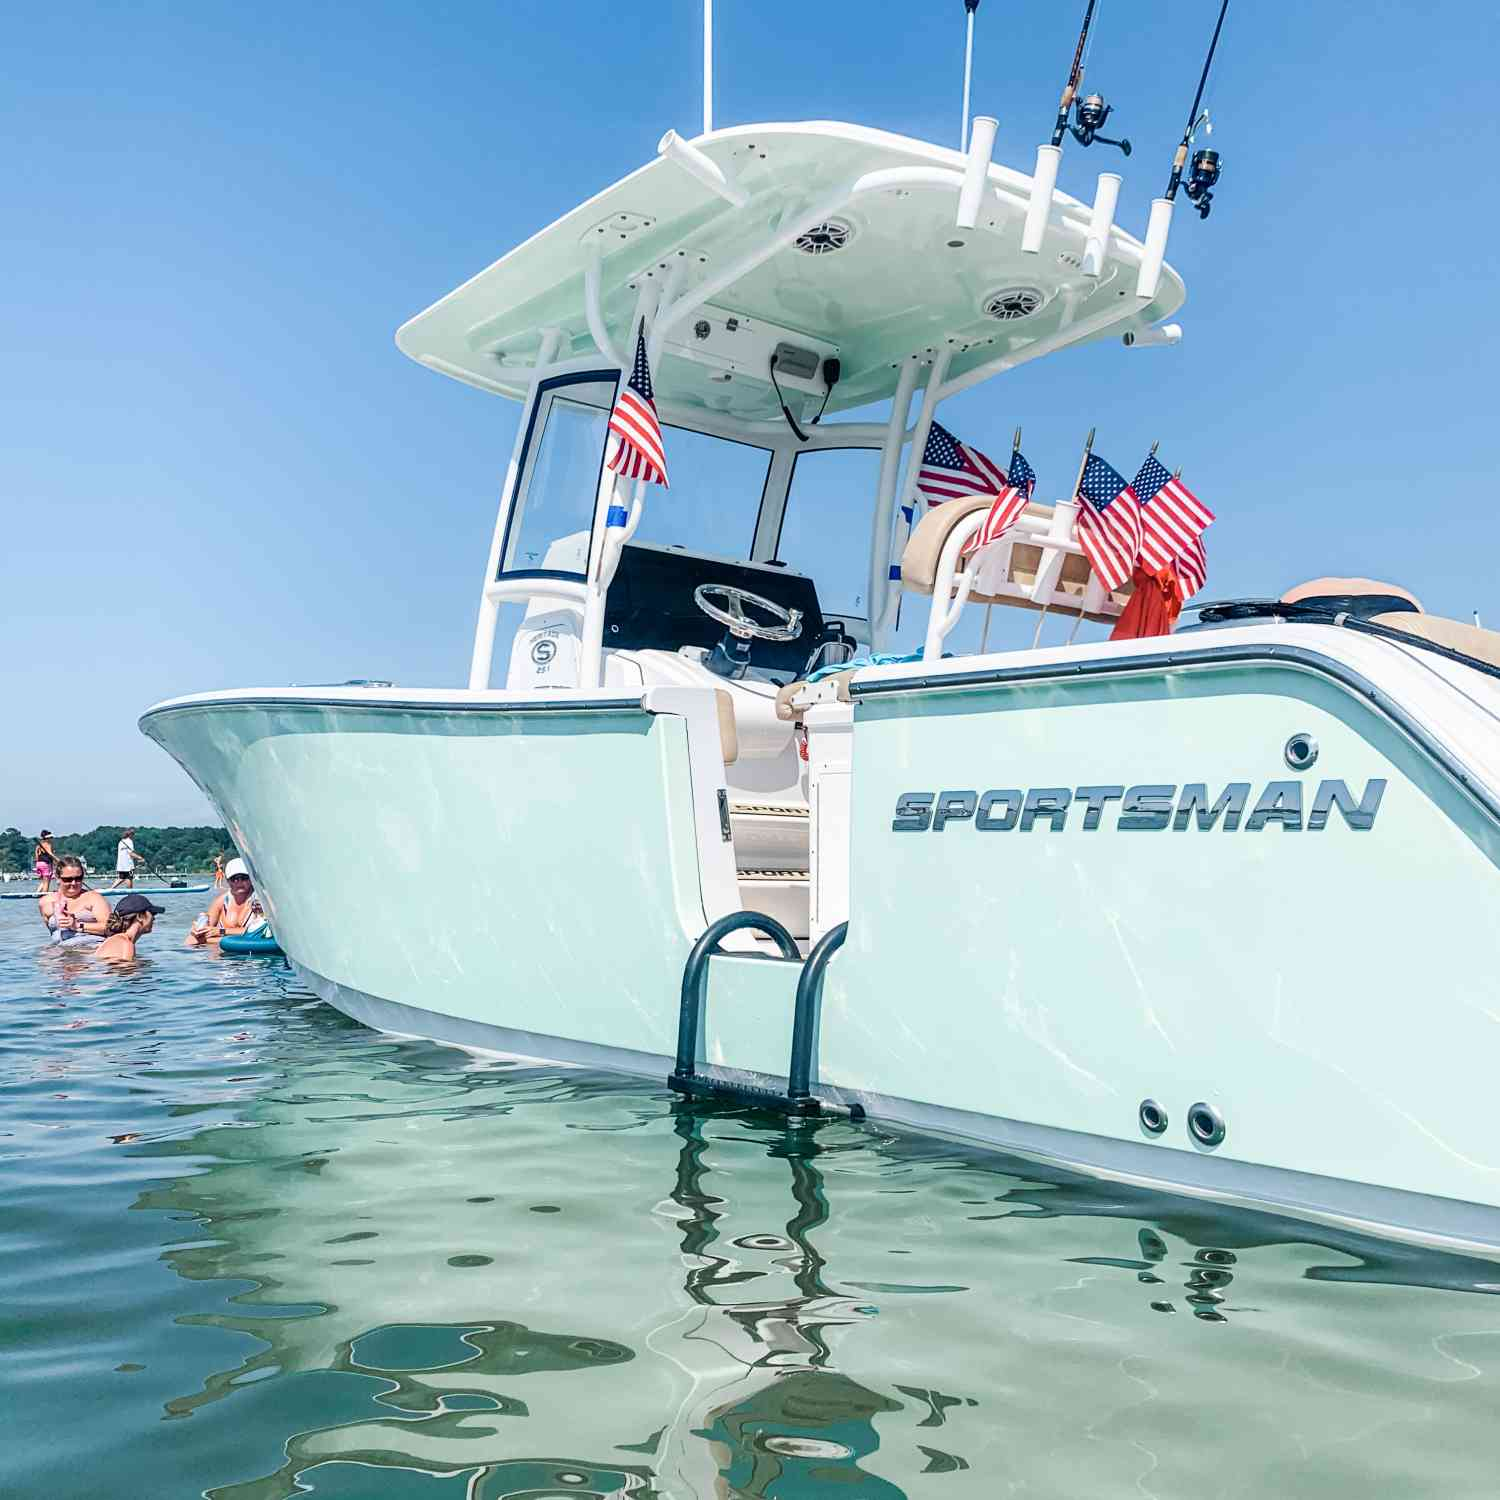 Title: Happy 4th of July from the sandbar - On board their Sportsman Heritage 251 Center Console - Location: Deltaville, Virginia. Participating in the Photo Contest #SportsmanJuly2020